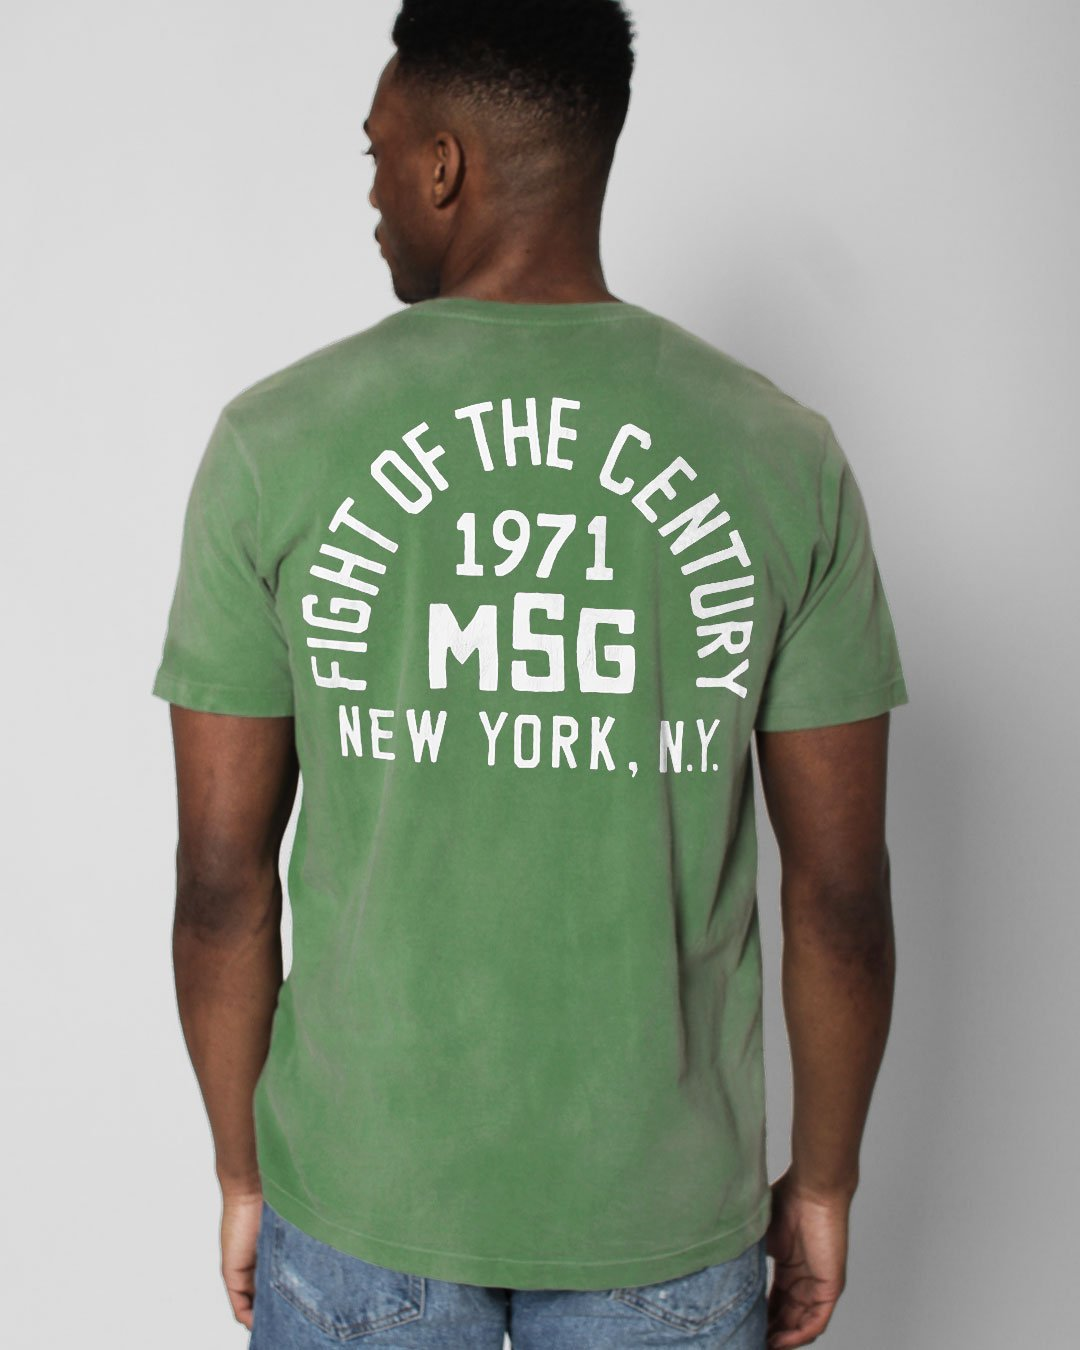 FOTC - Frazier 1971 MSG Tee - Roots of Inc dba Roots of Fight